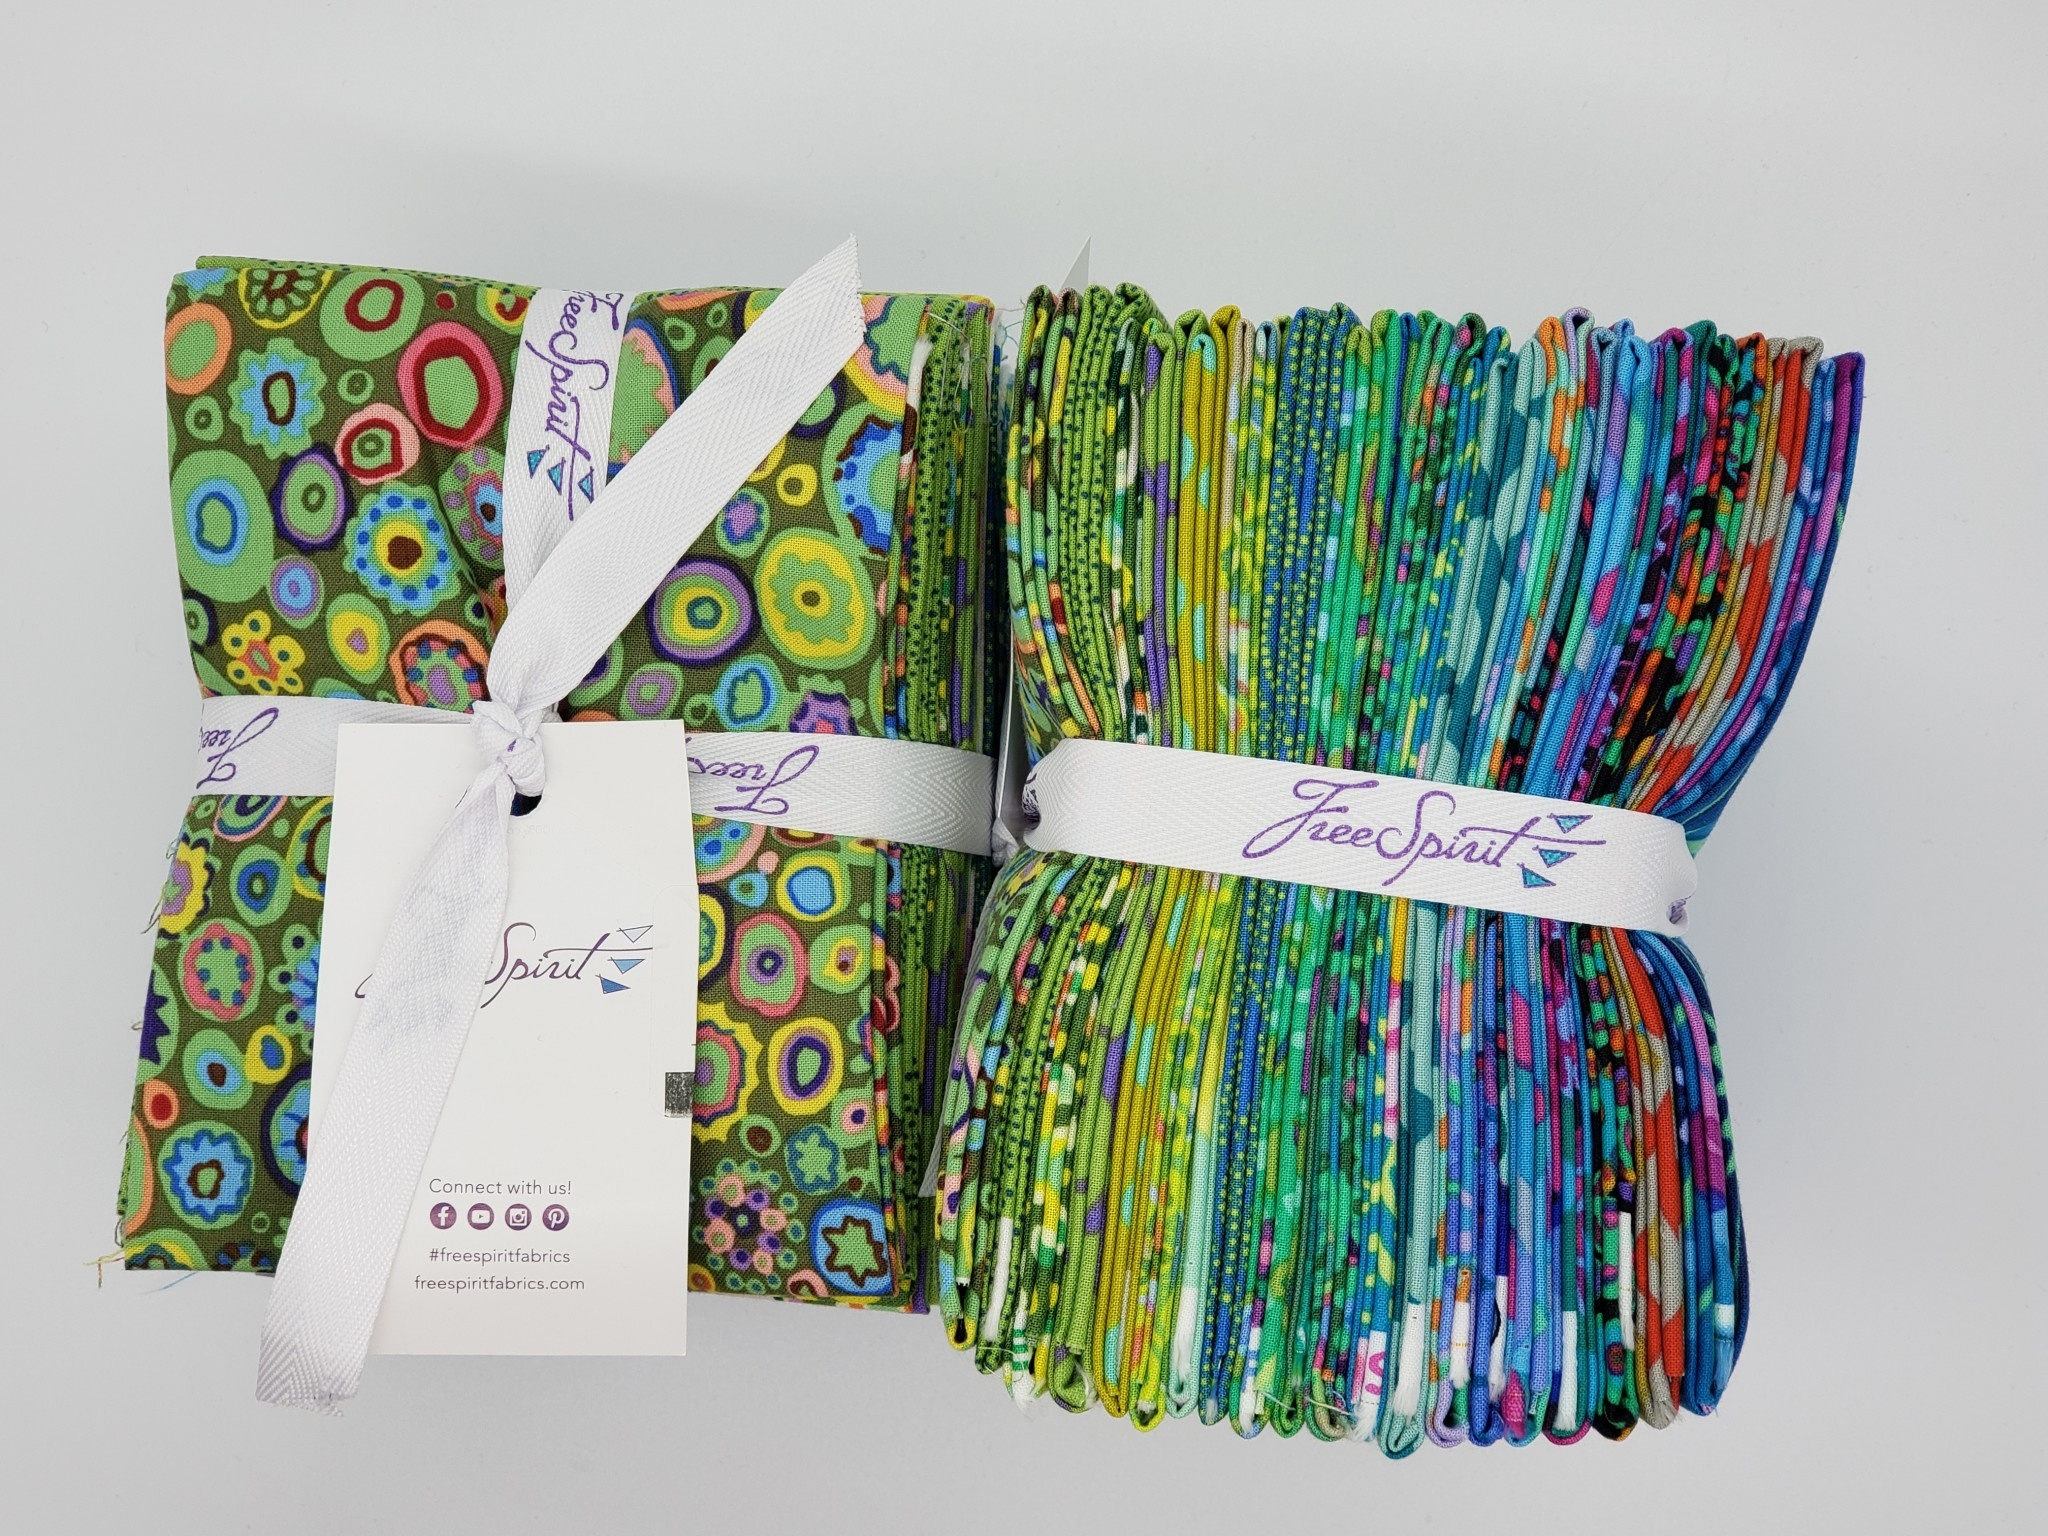 KAFFE FASSETT KF Collective FAT 1/4 BUNDLE - ISLAND